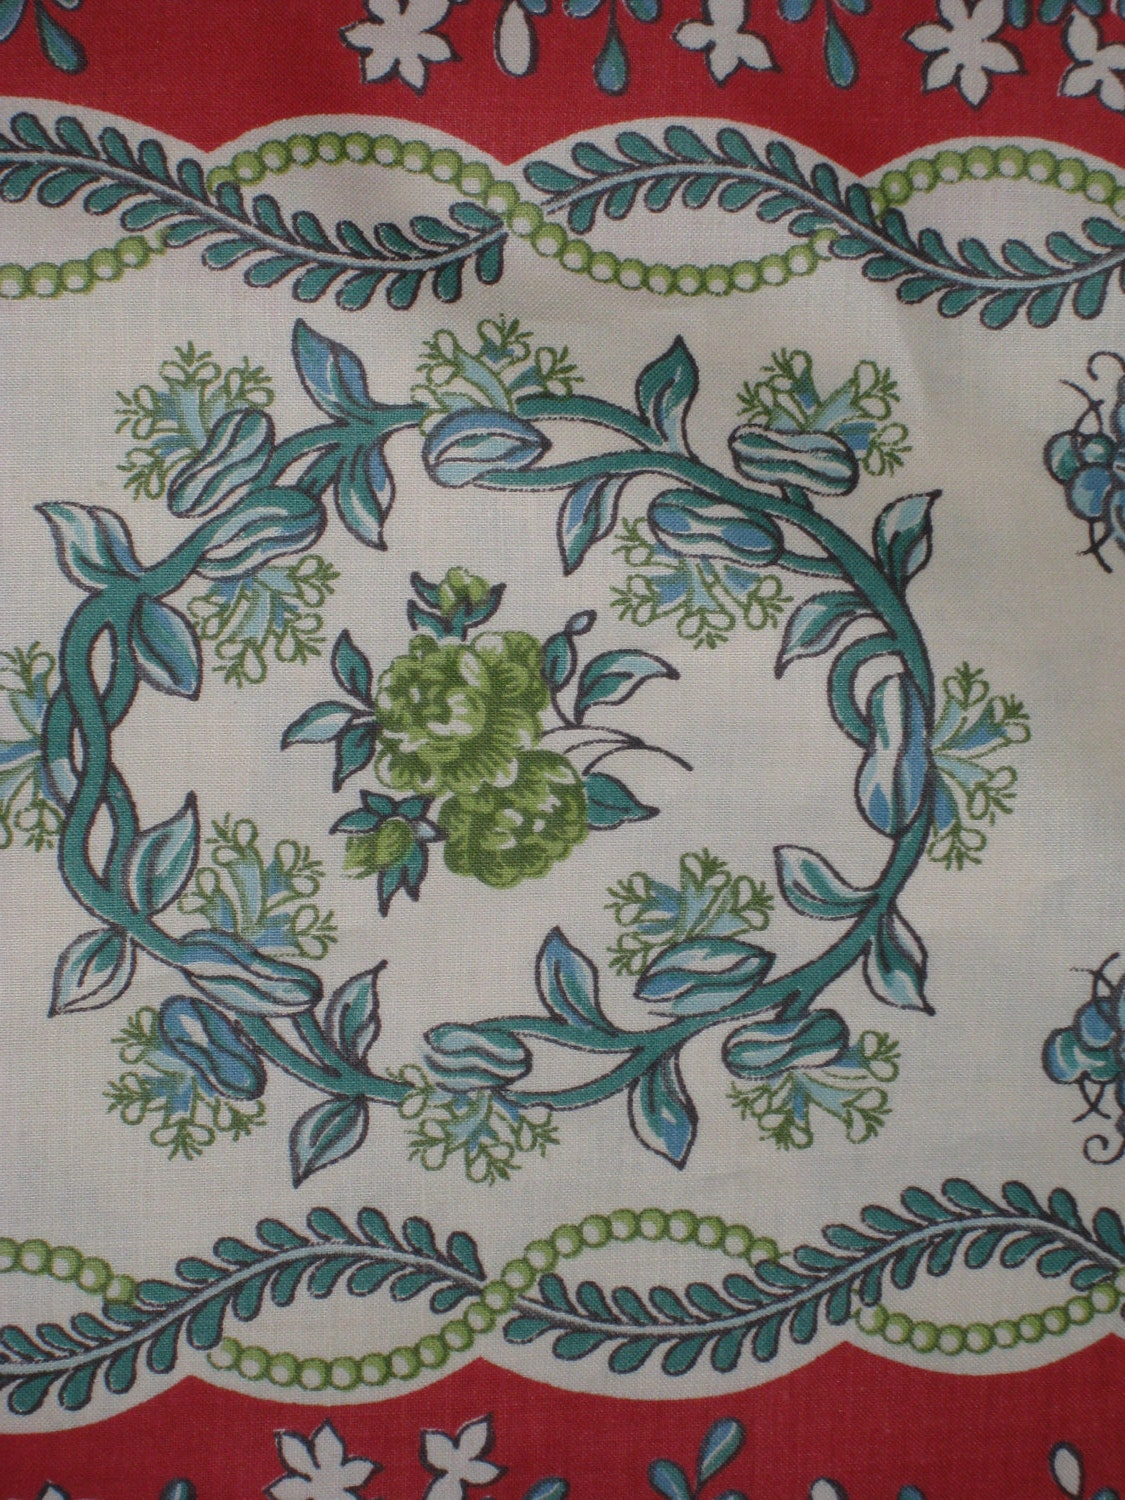 Vintage cotton chintz fabric vintage textiles vintage for Chintz fabric